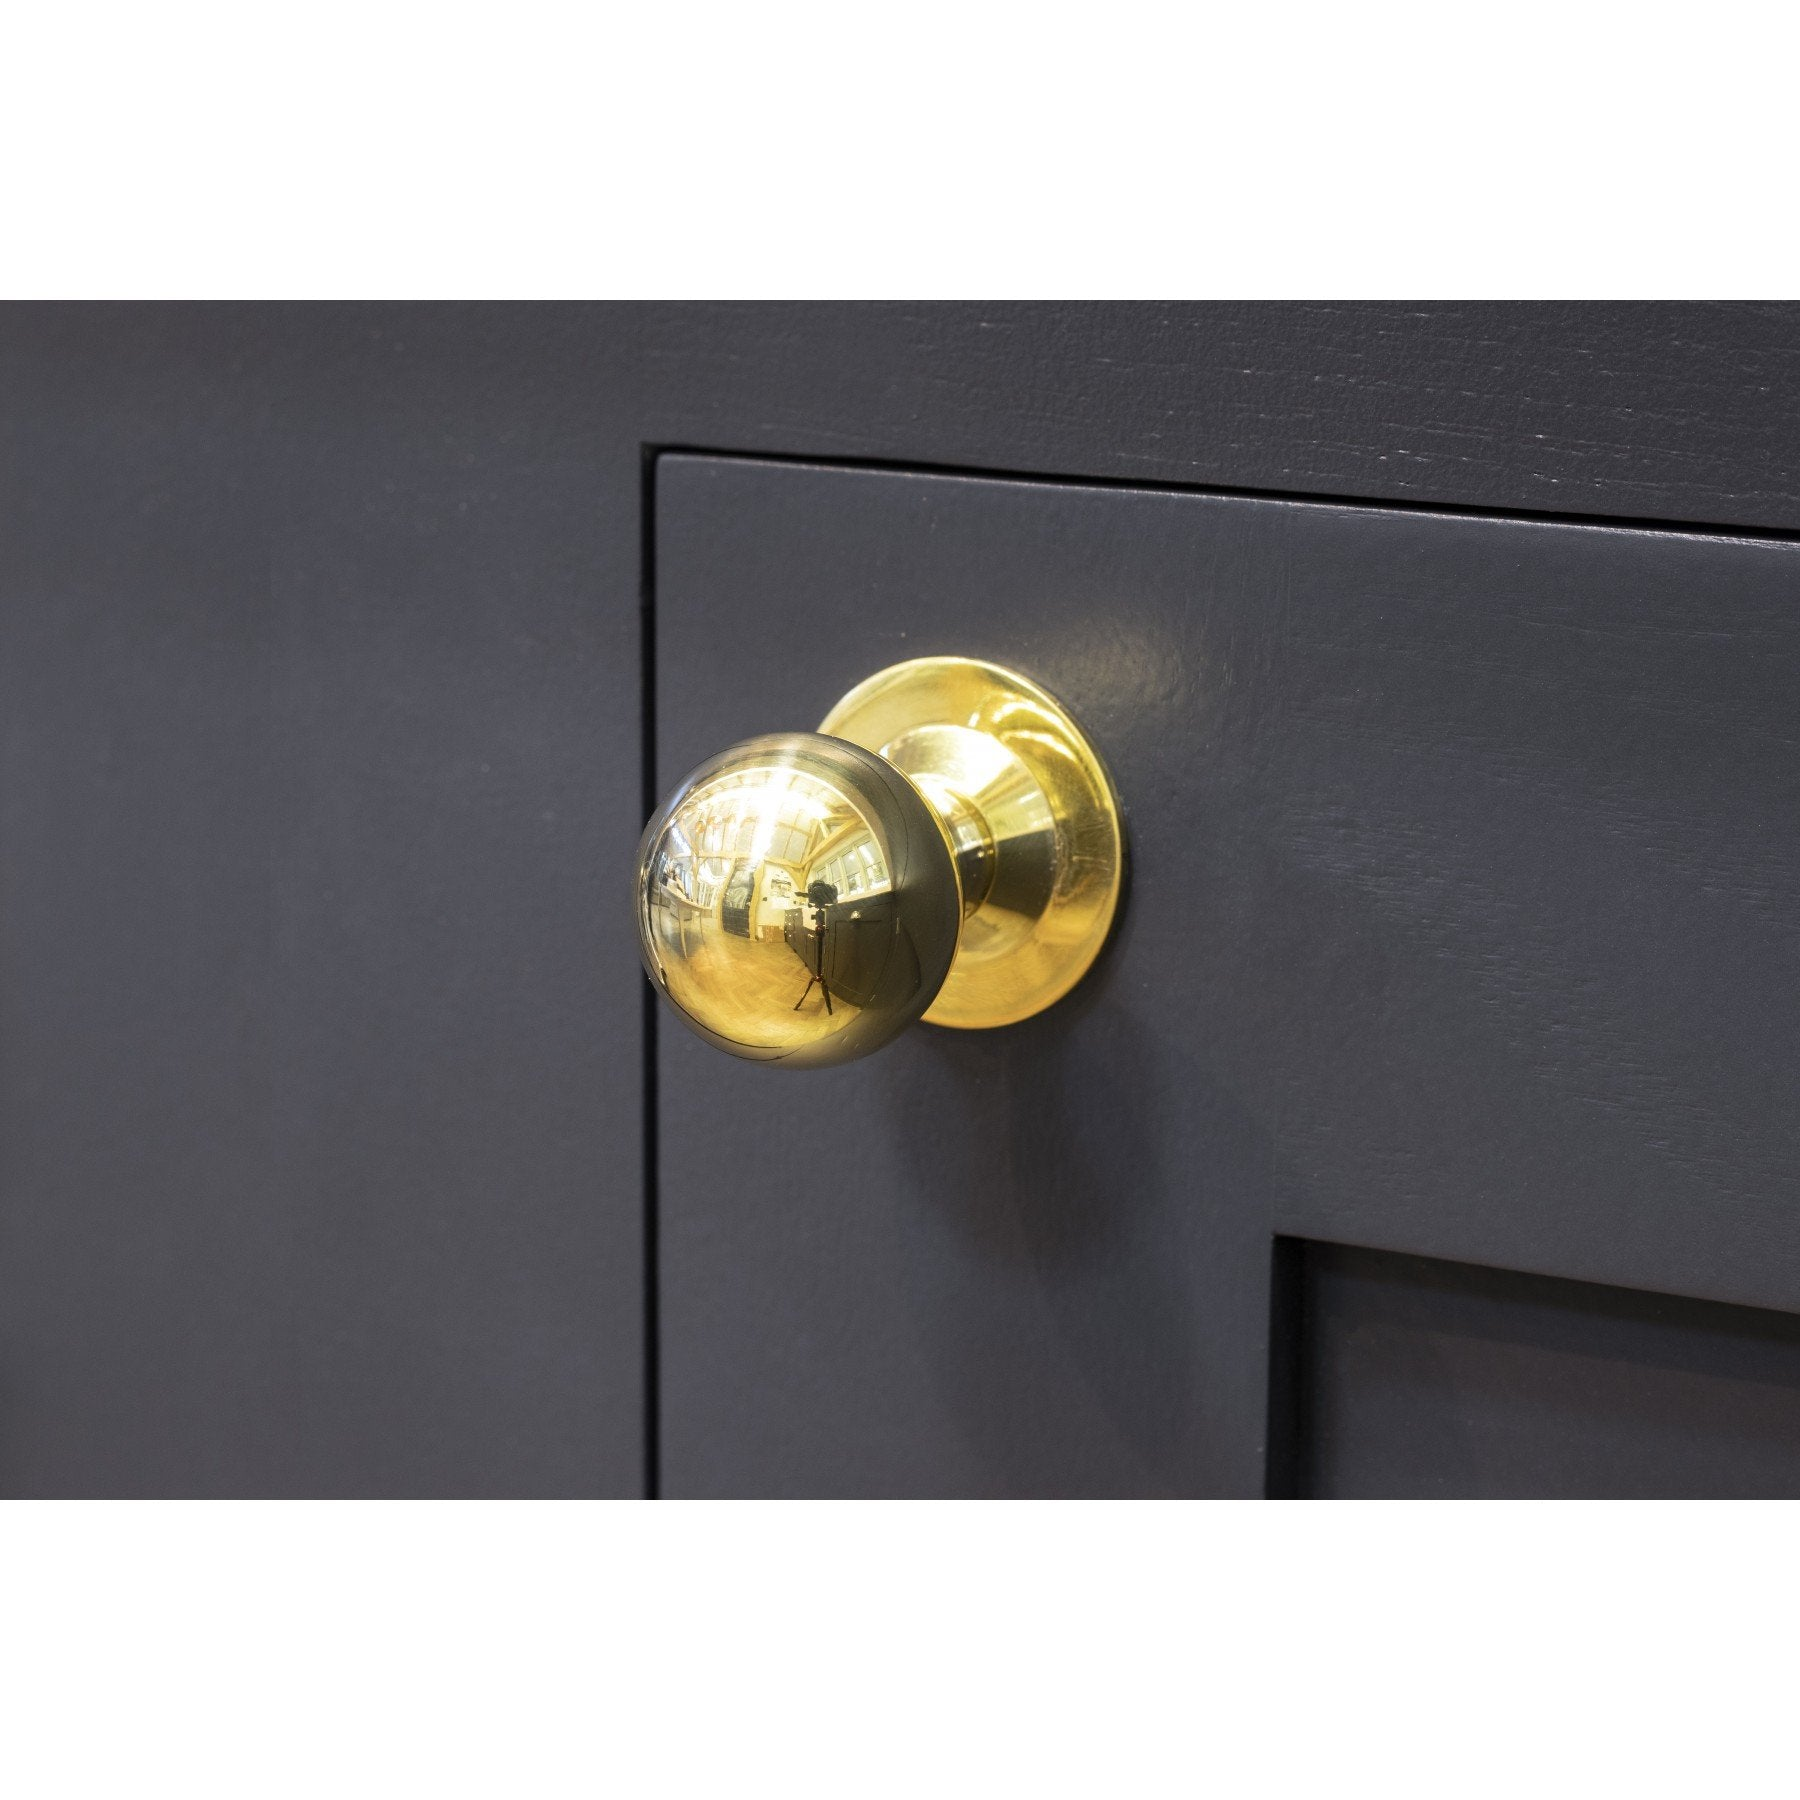 Polished Brass Ball Cabinet Knob - Small - No.42 Interiors